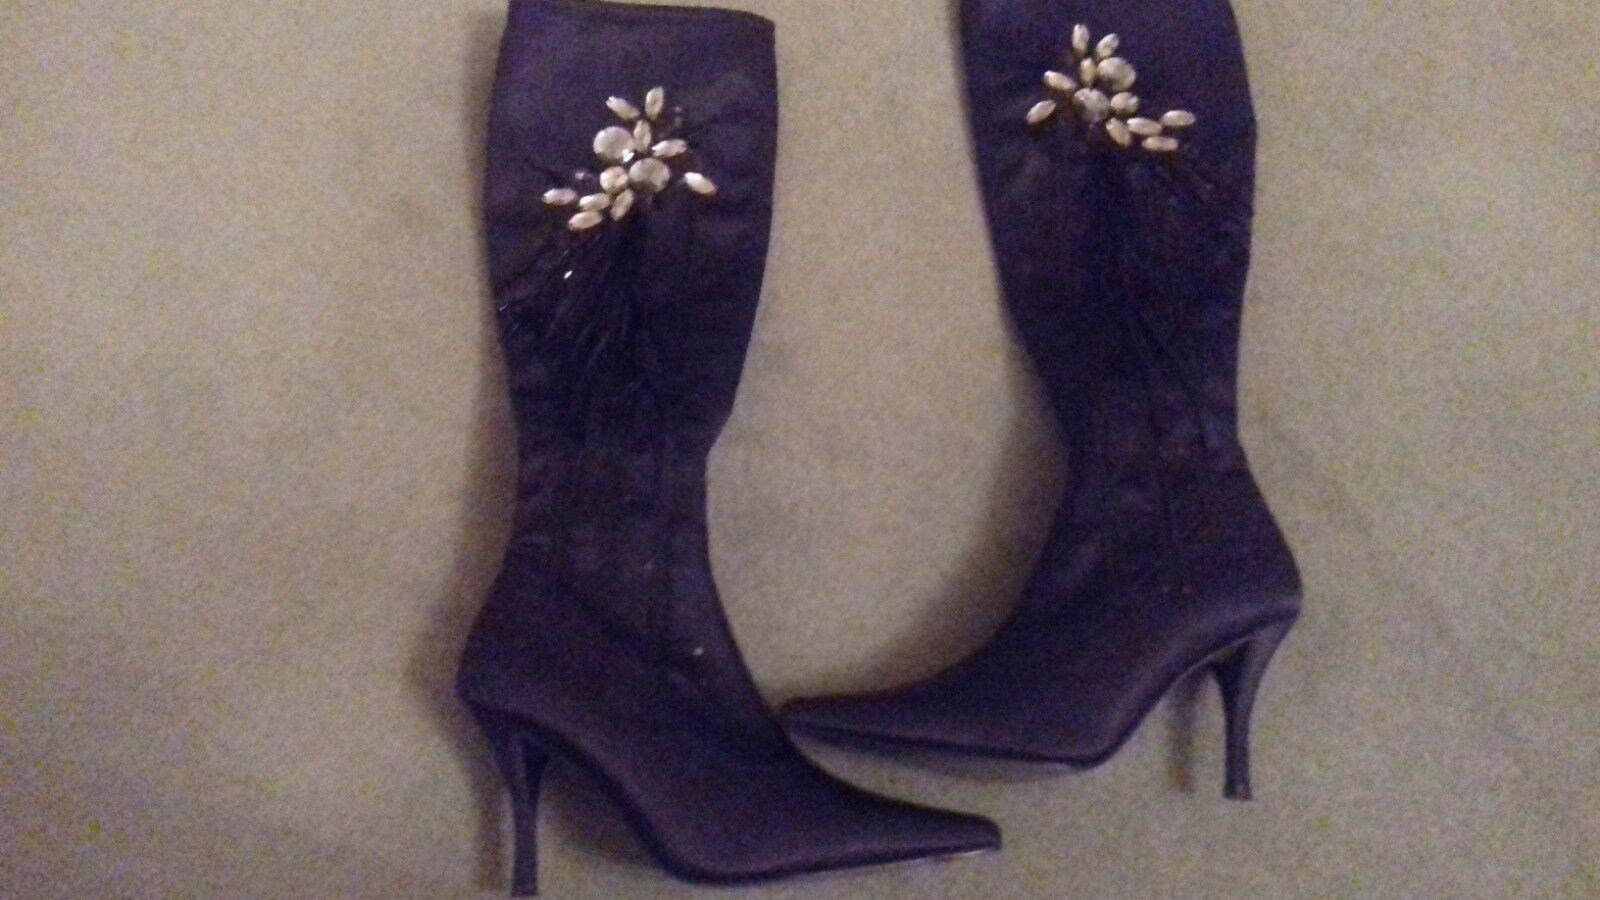 BOURNE BLACK SATIN JEWELLED BOOTS SIZE 4